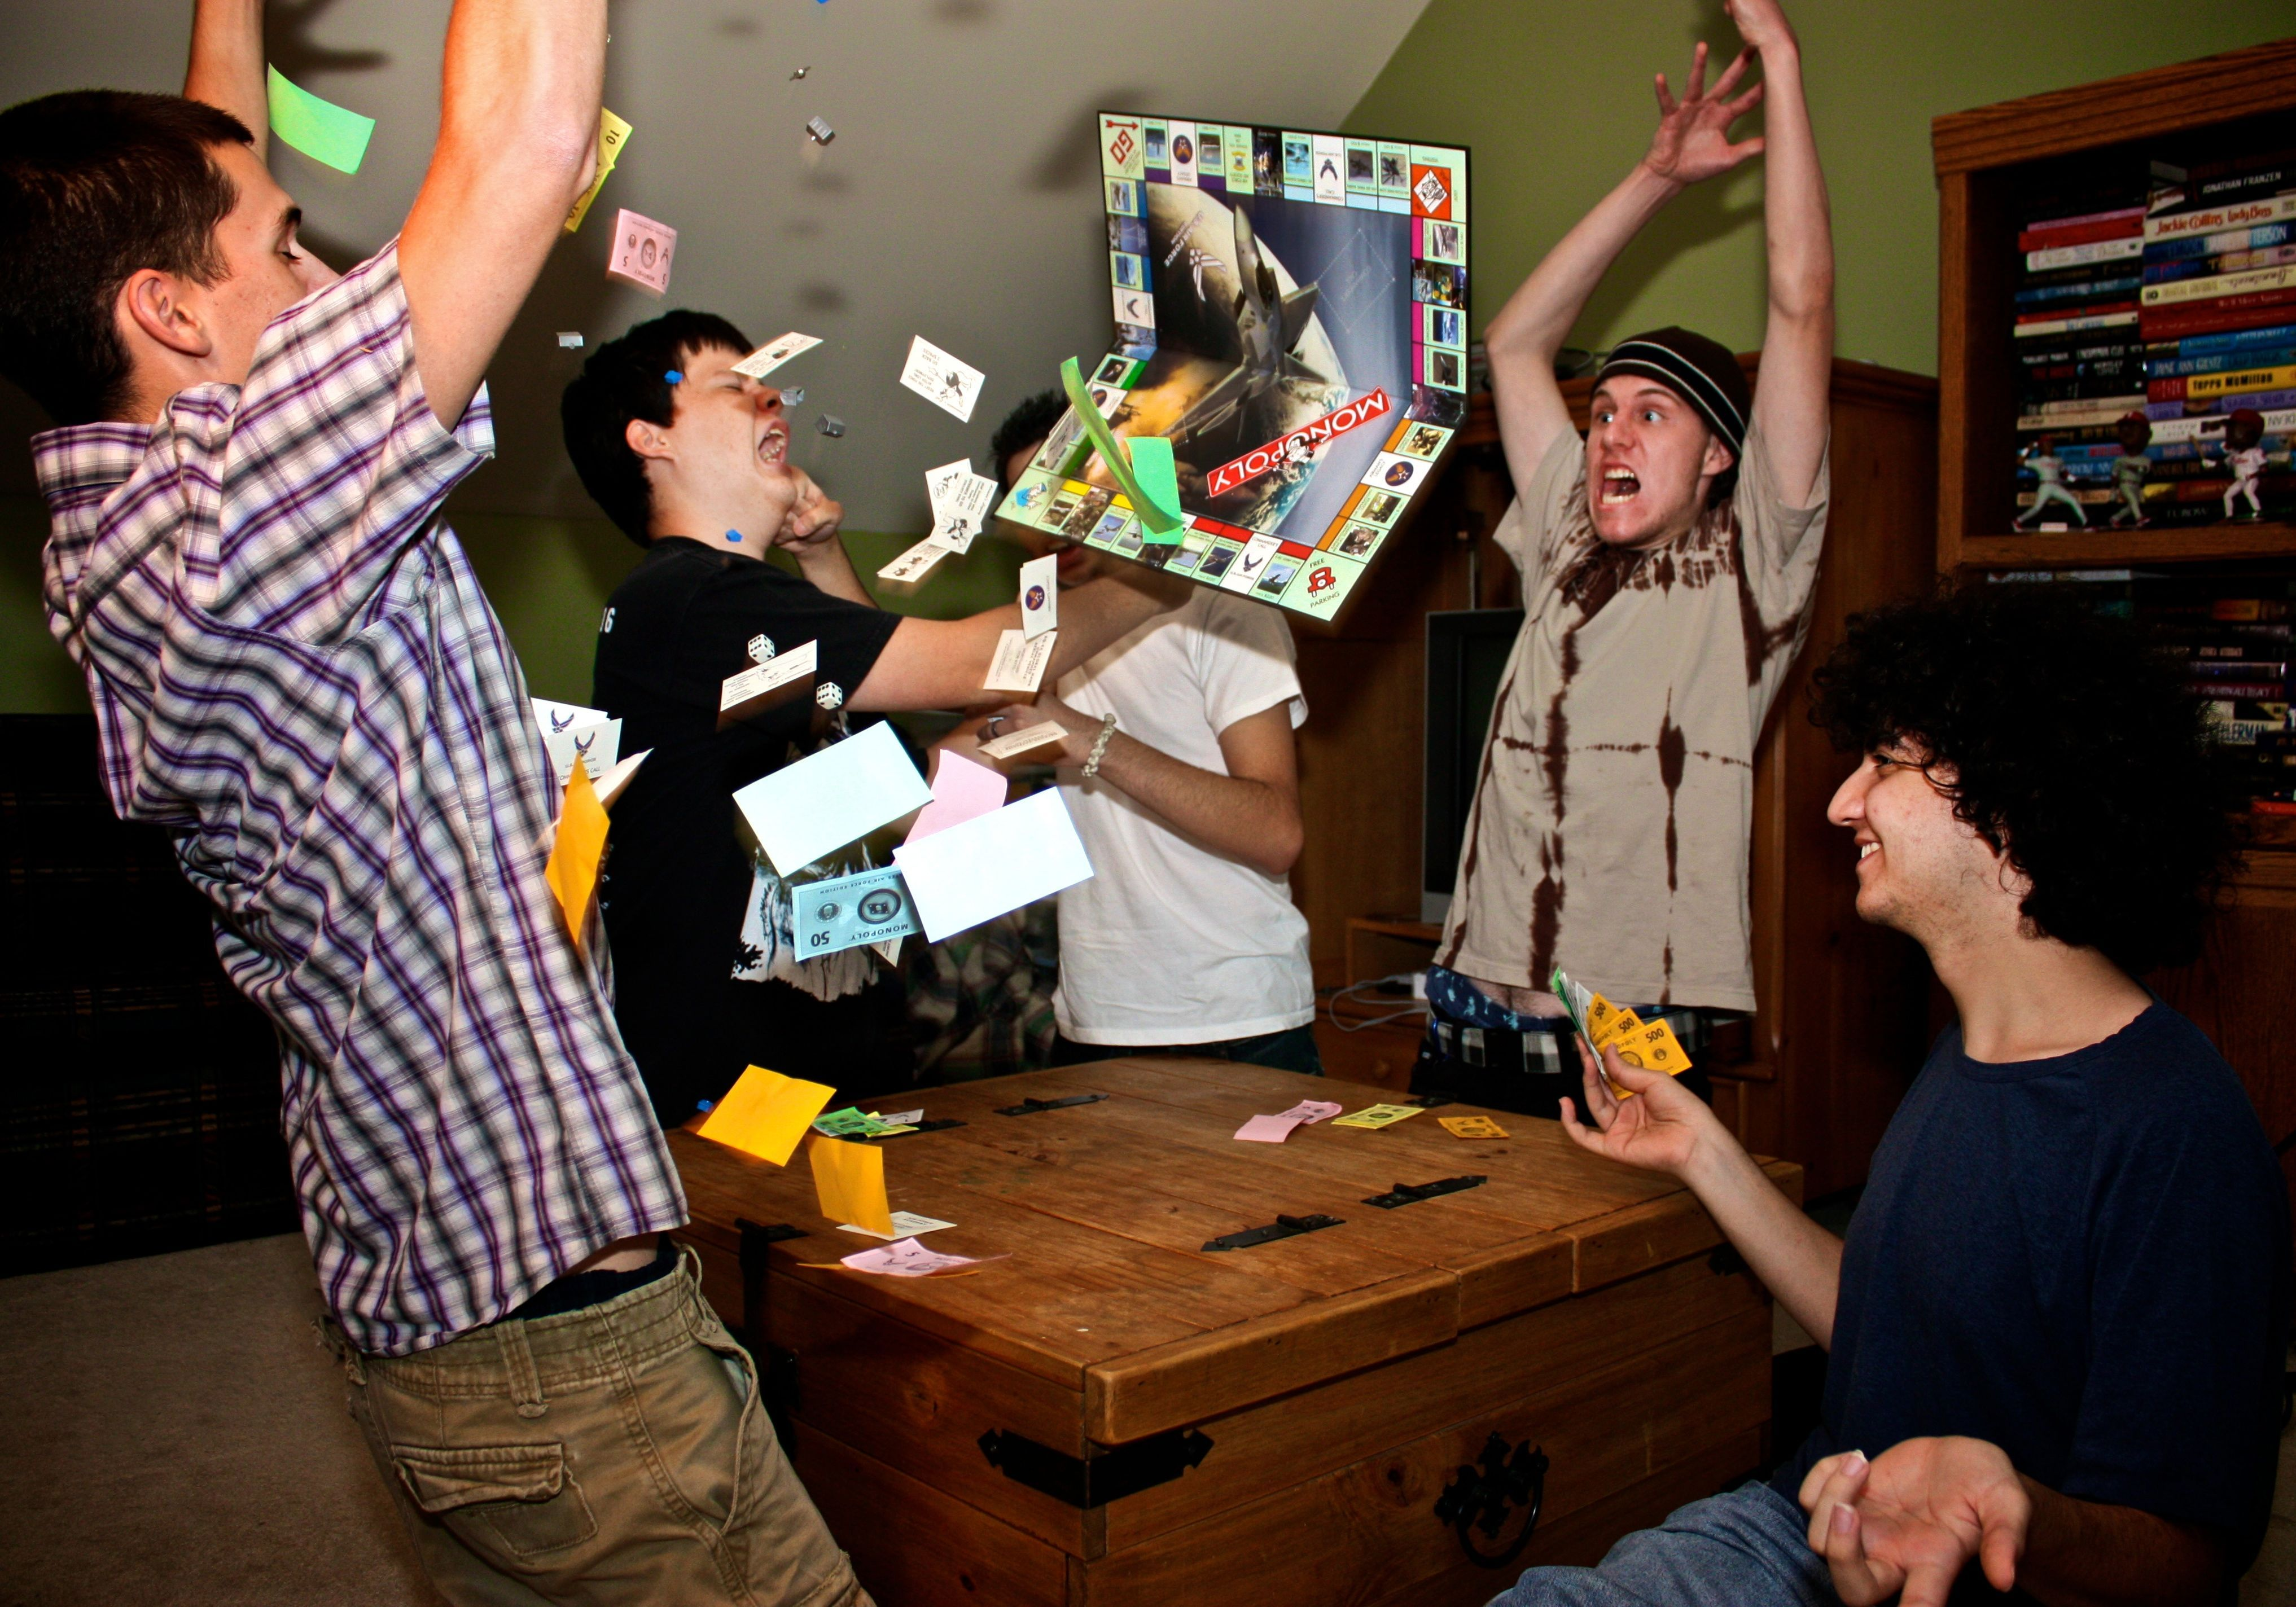 How to have an awesome game night a geek girls guide